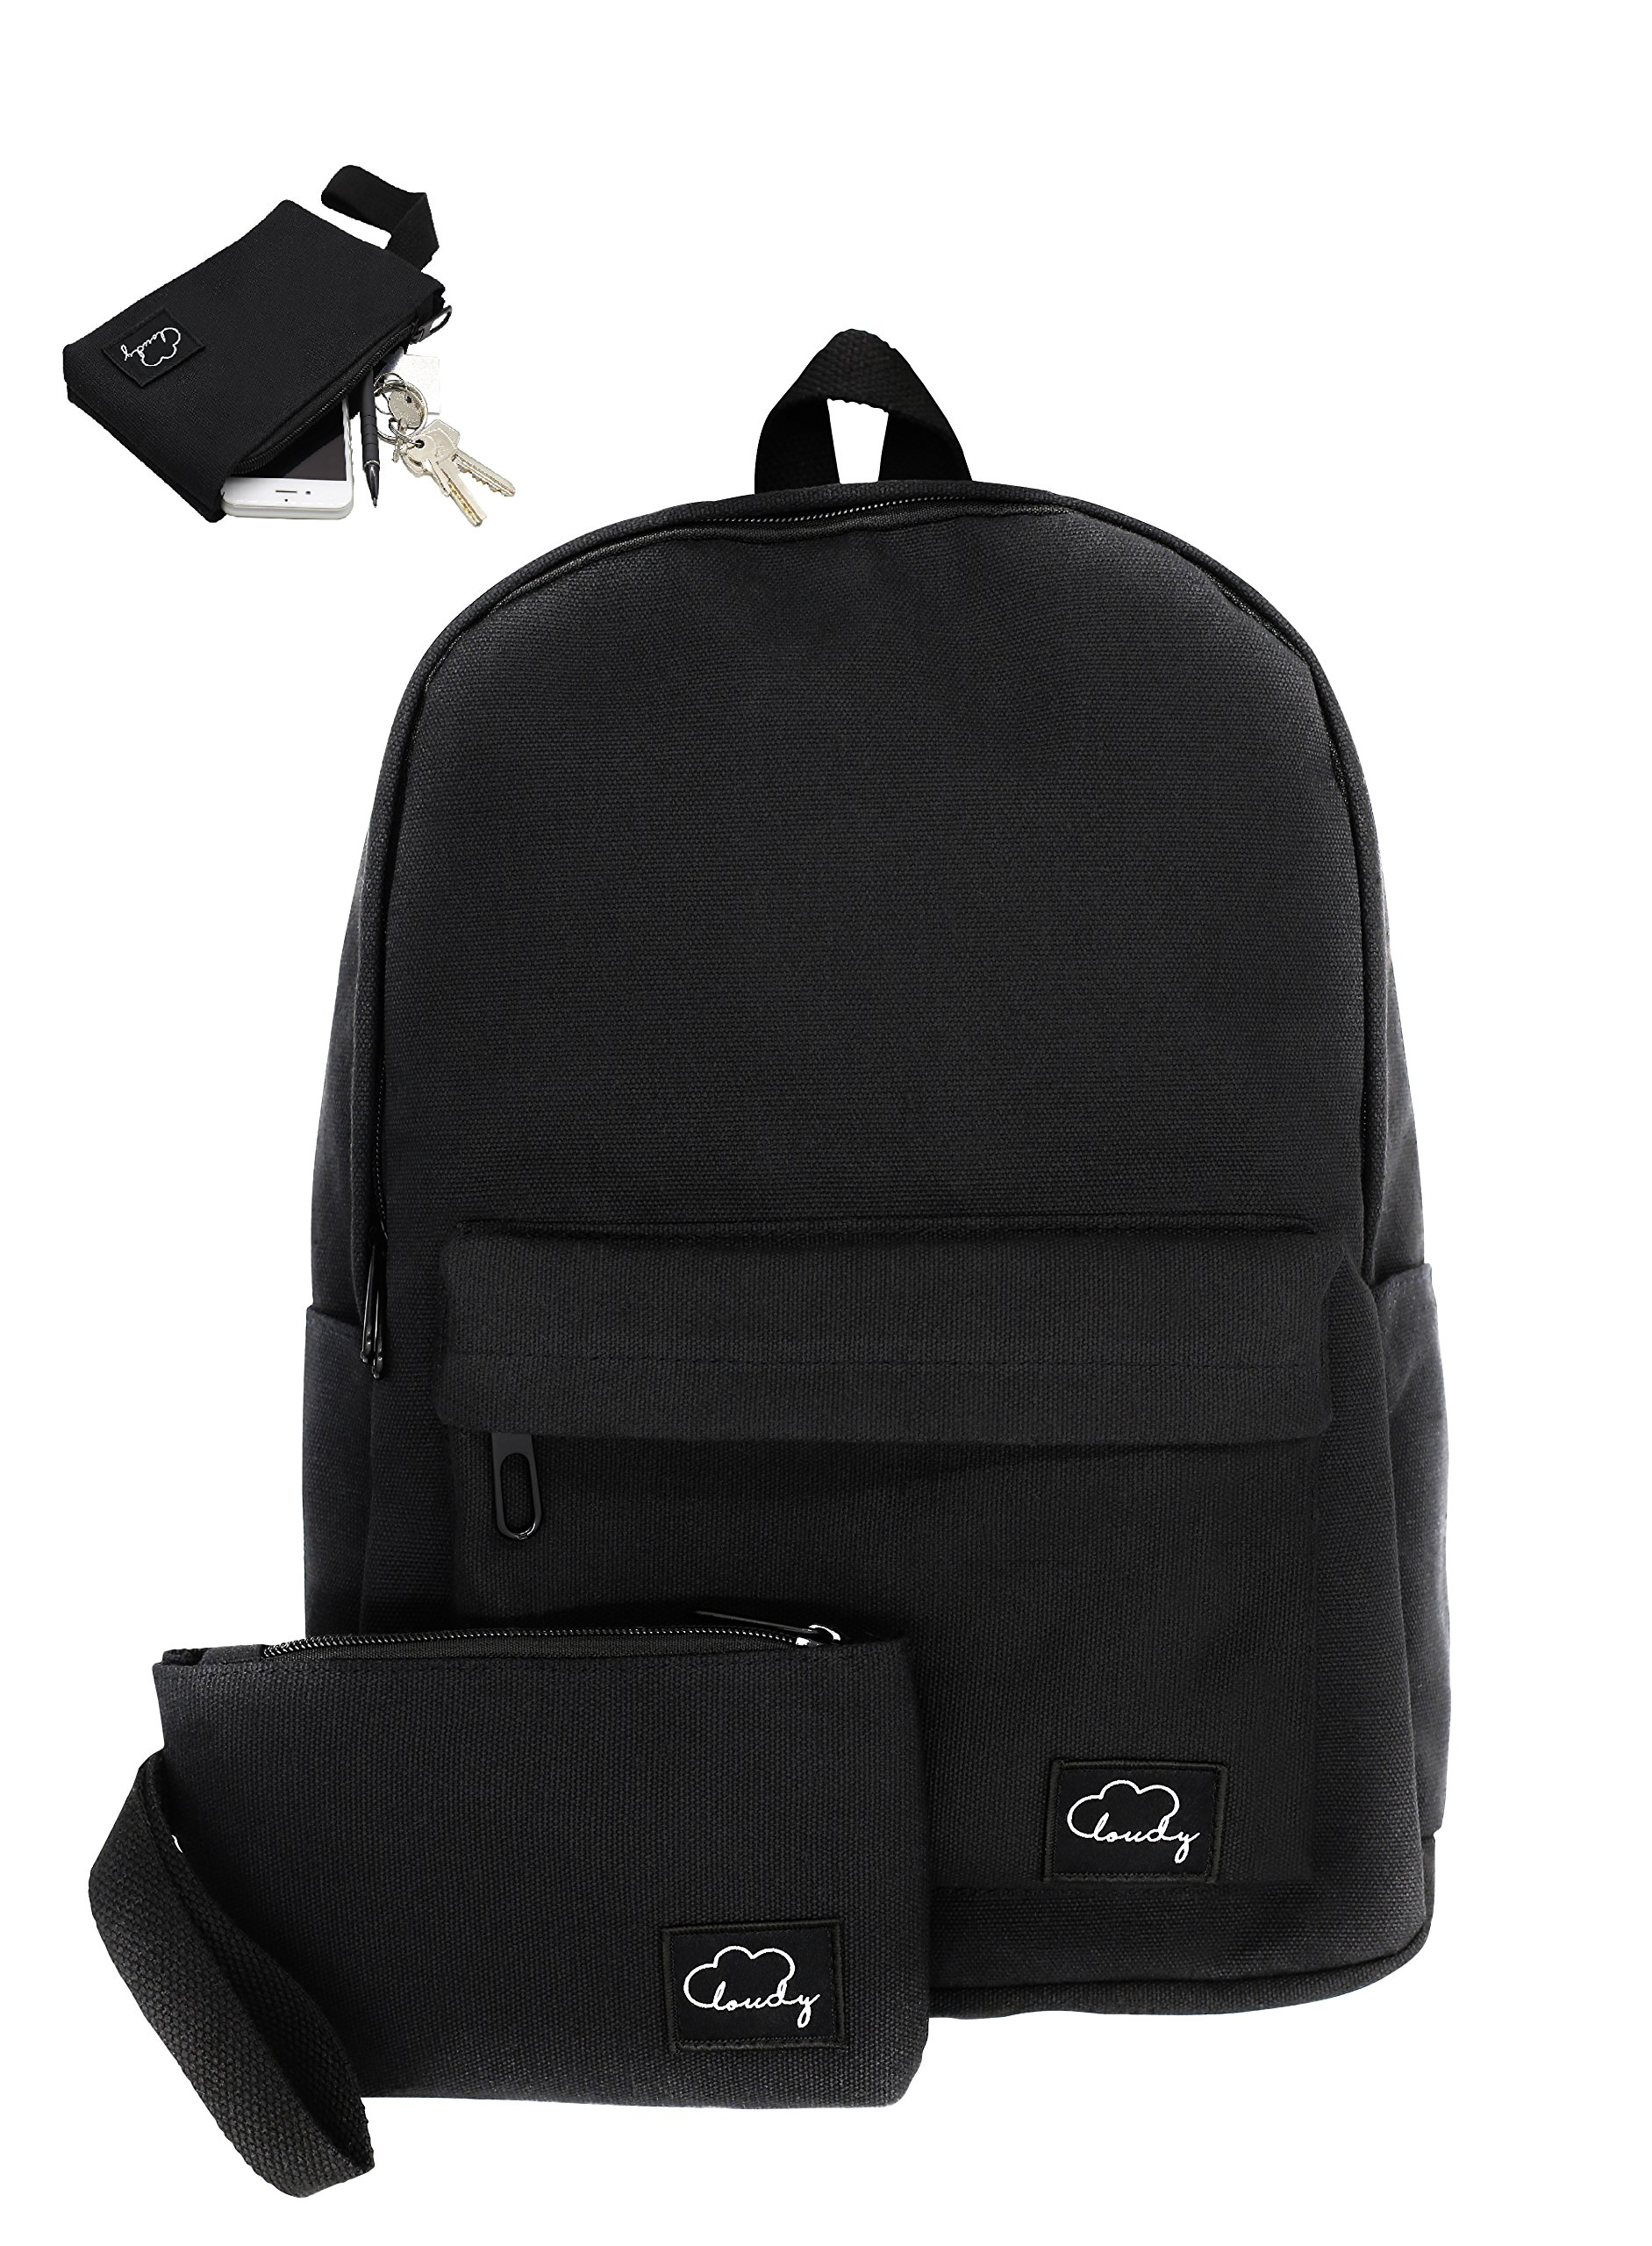 School Backpack for Women Girls Man + BONUS Matching Zipped Wallet | 13'' Mac or Smaller Laptop Travel Black Backpack | 100% Organic Cotton | Perfect for High School, College, Hiking or Gym by CLOUDY